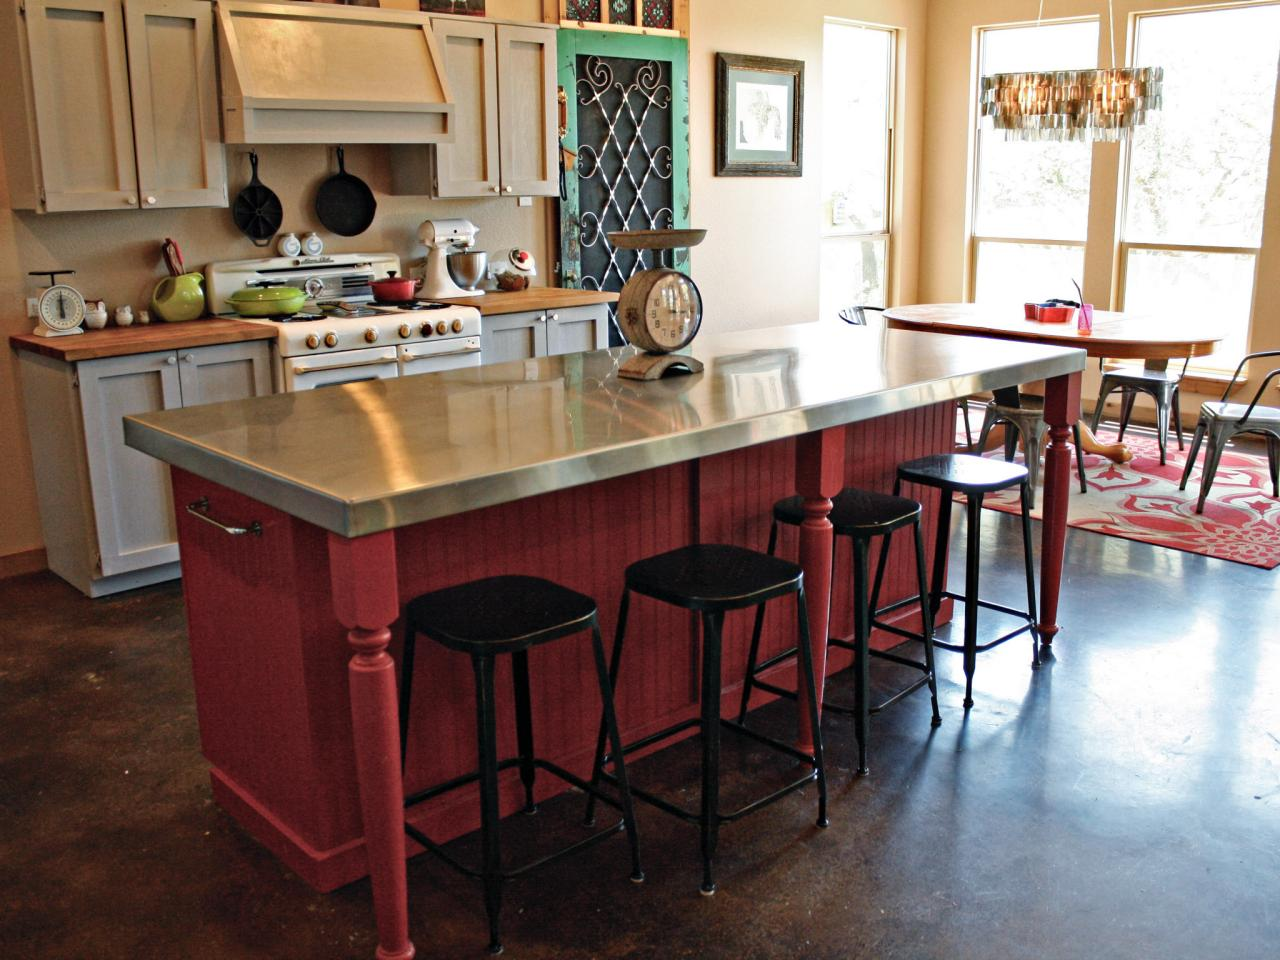 diy red kitchen island with seating area